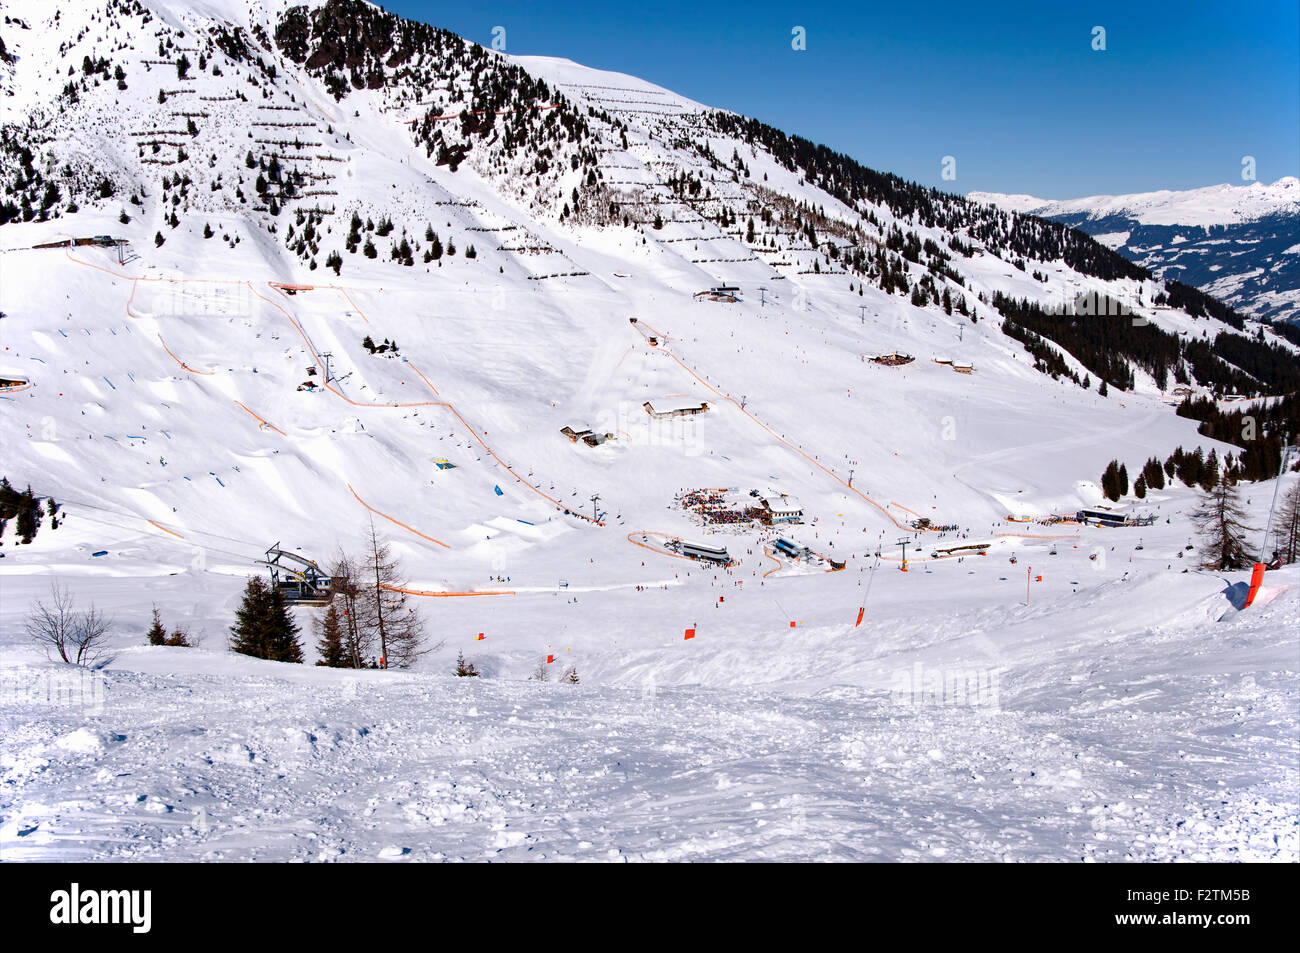 Mayrhofen Ski resort midle station area with ski lifts, pistes and skiers. Zillertal Alps, Tirol, Austria. - Stock Image